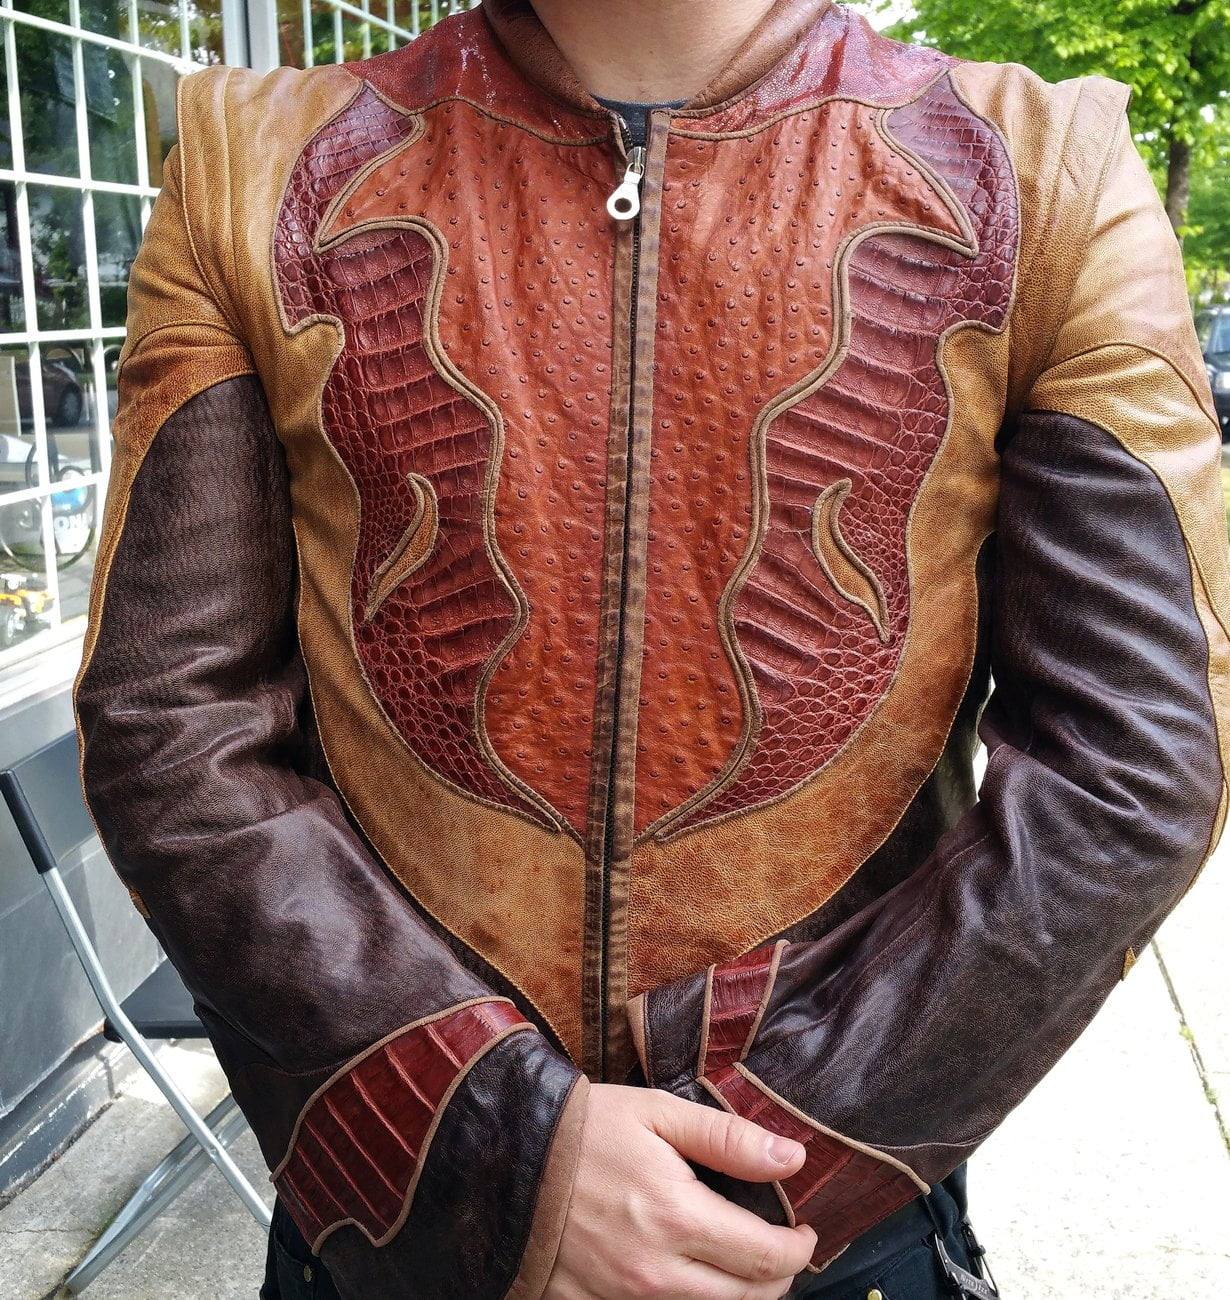 Exotic Leathers in Search of a Rock Star